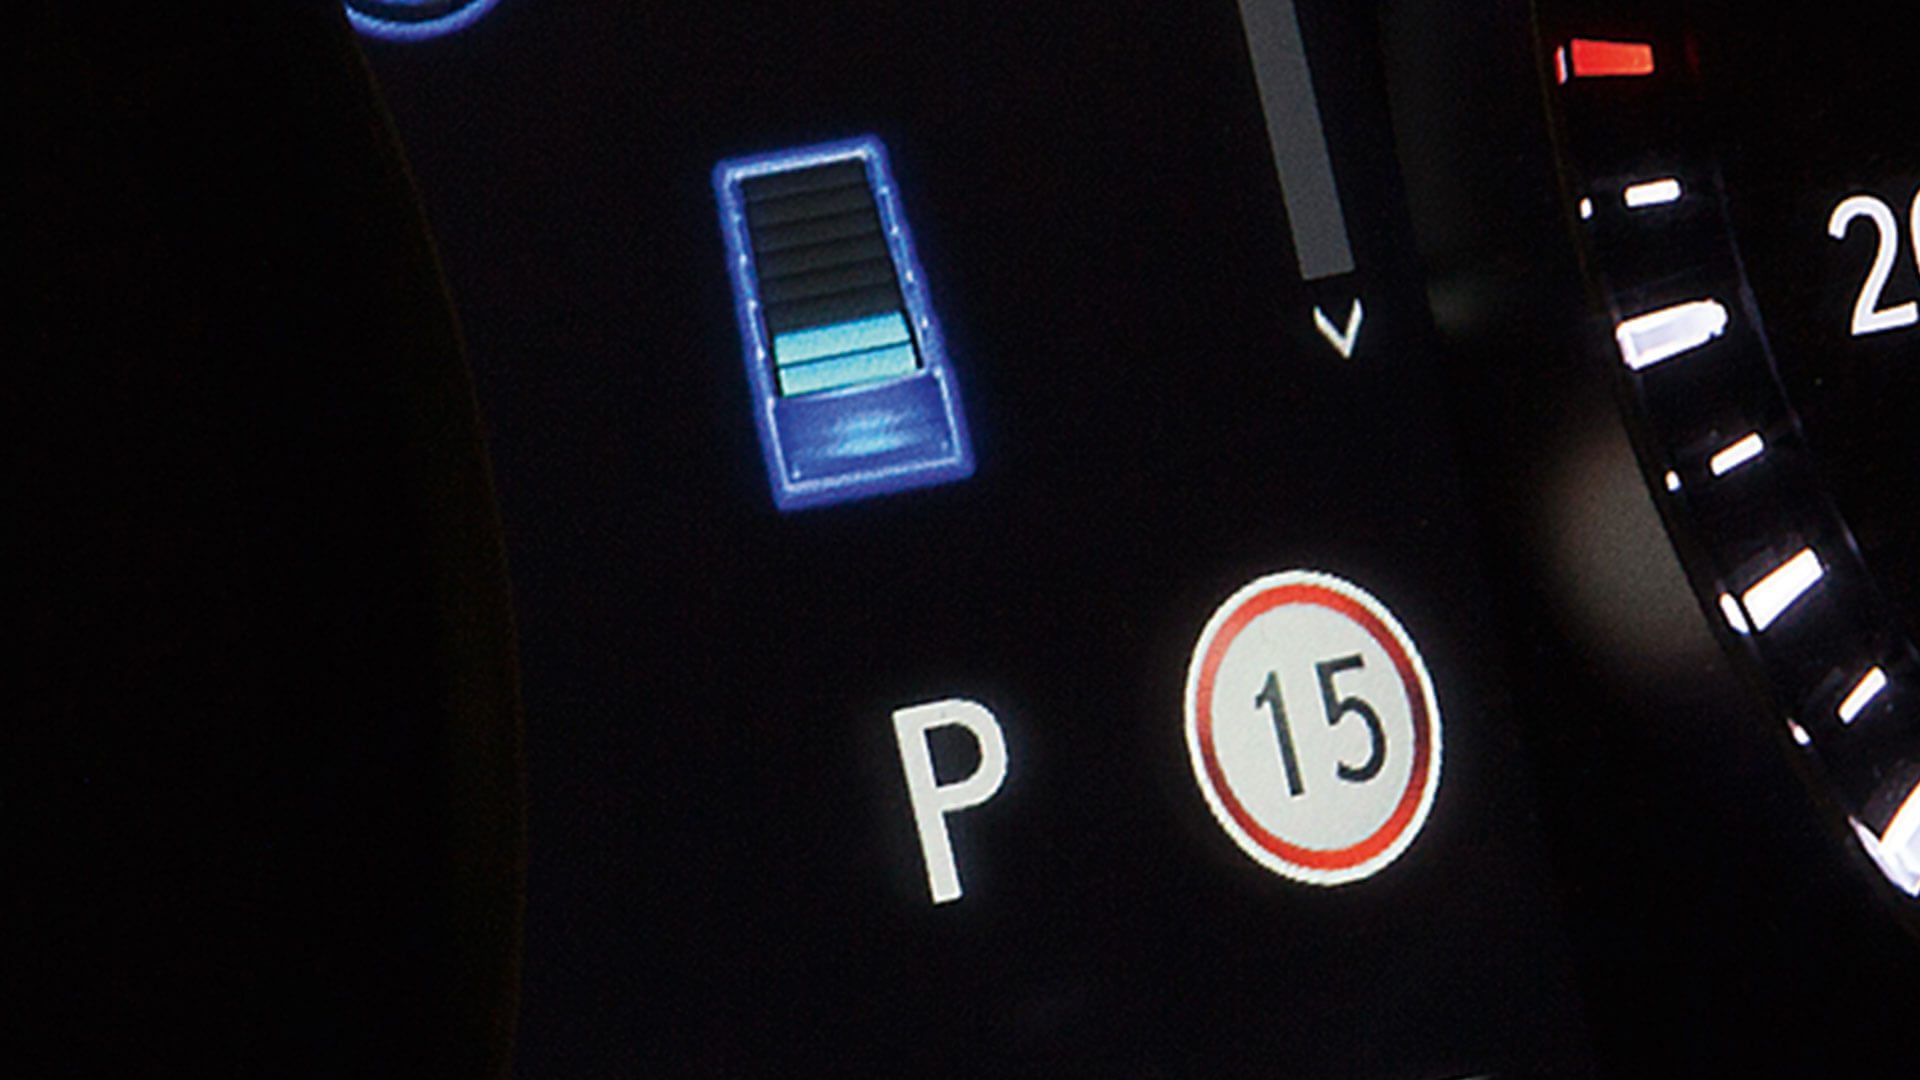 2017 lexus is 300h features road sign assist